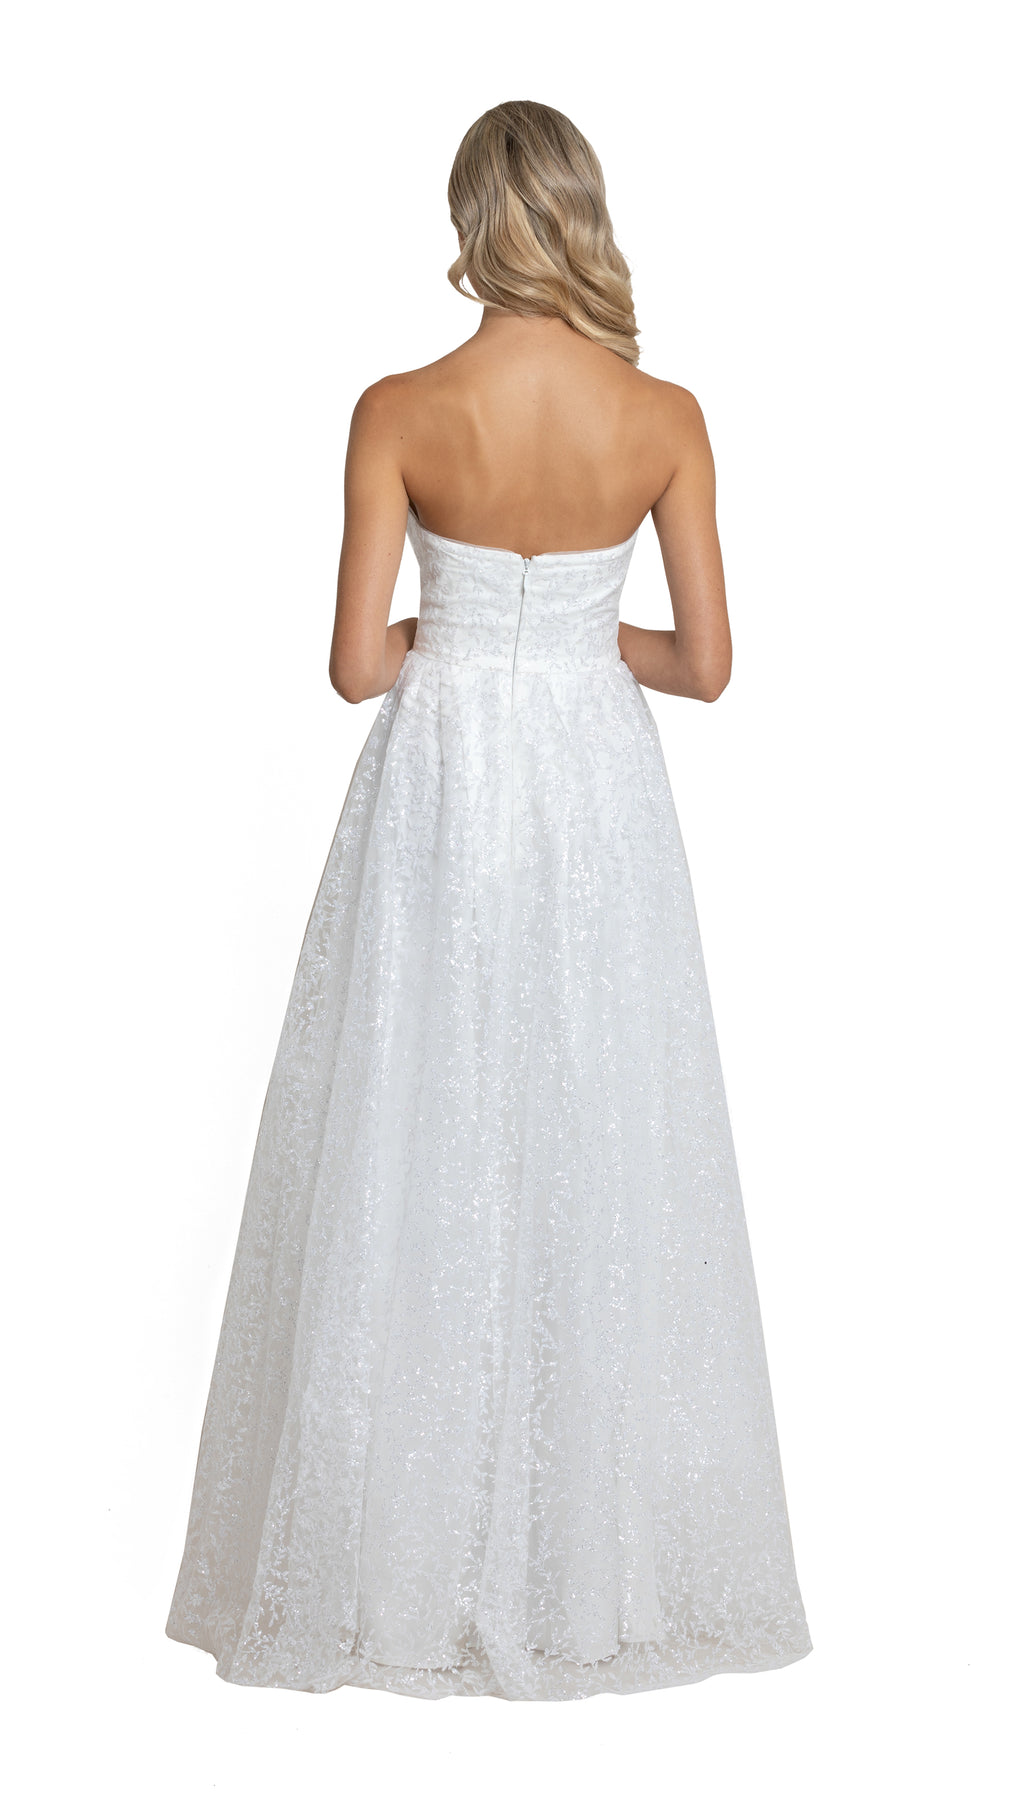 Carla Sweetheart Glitter Gown in white back